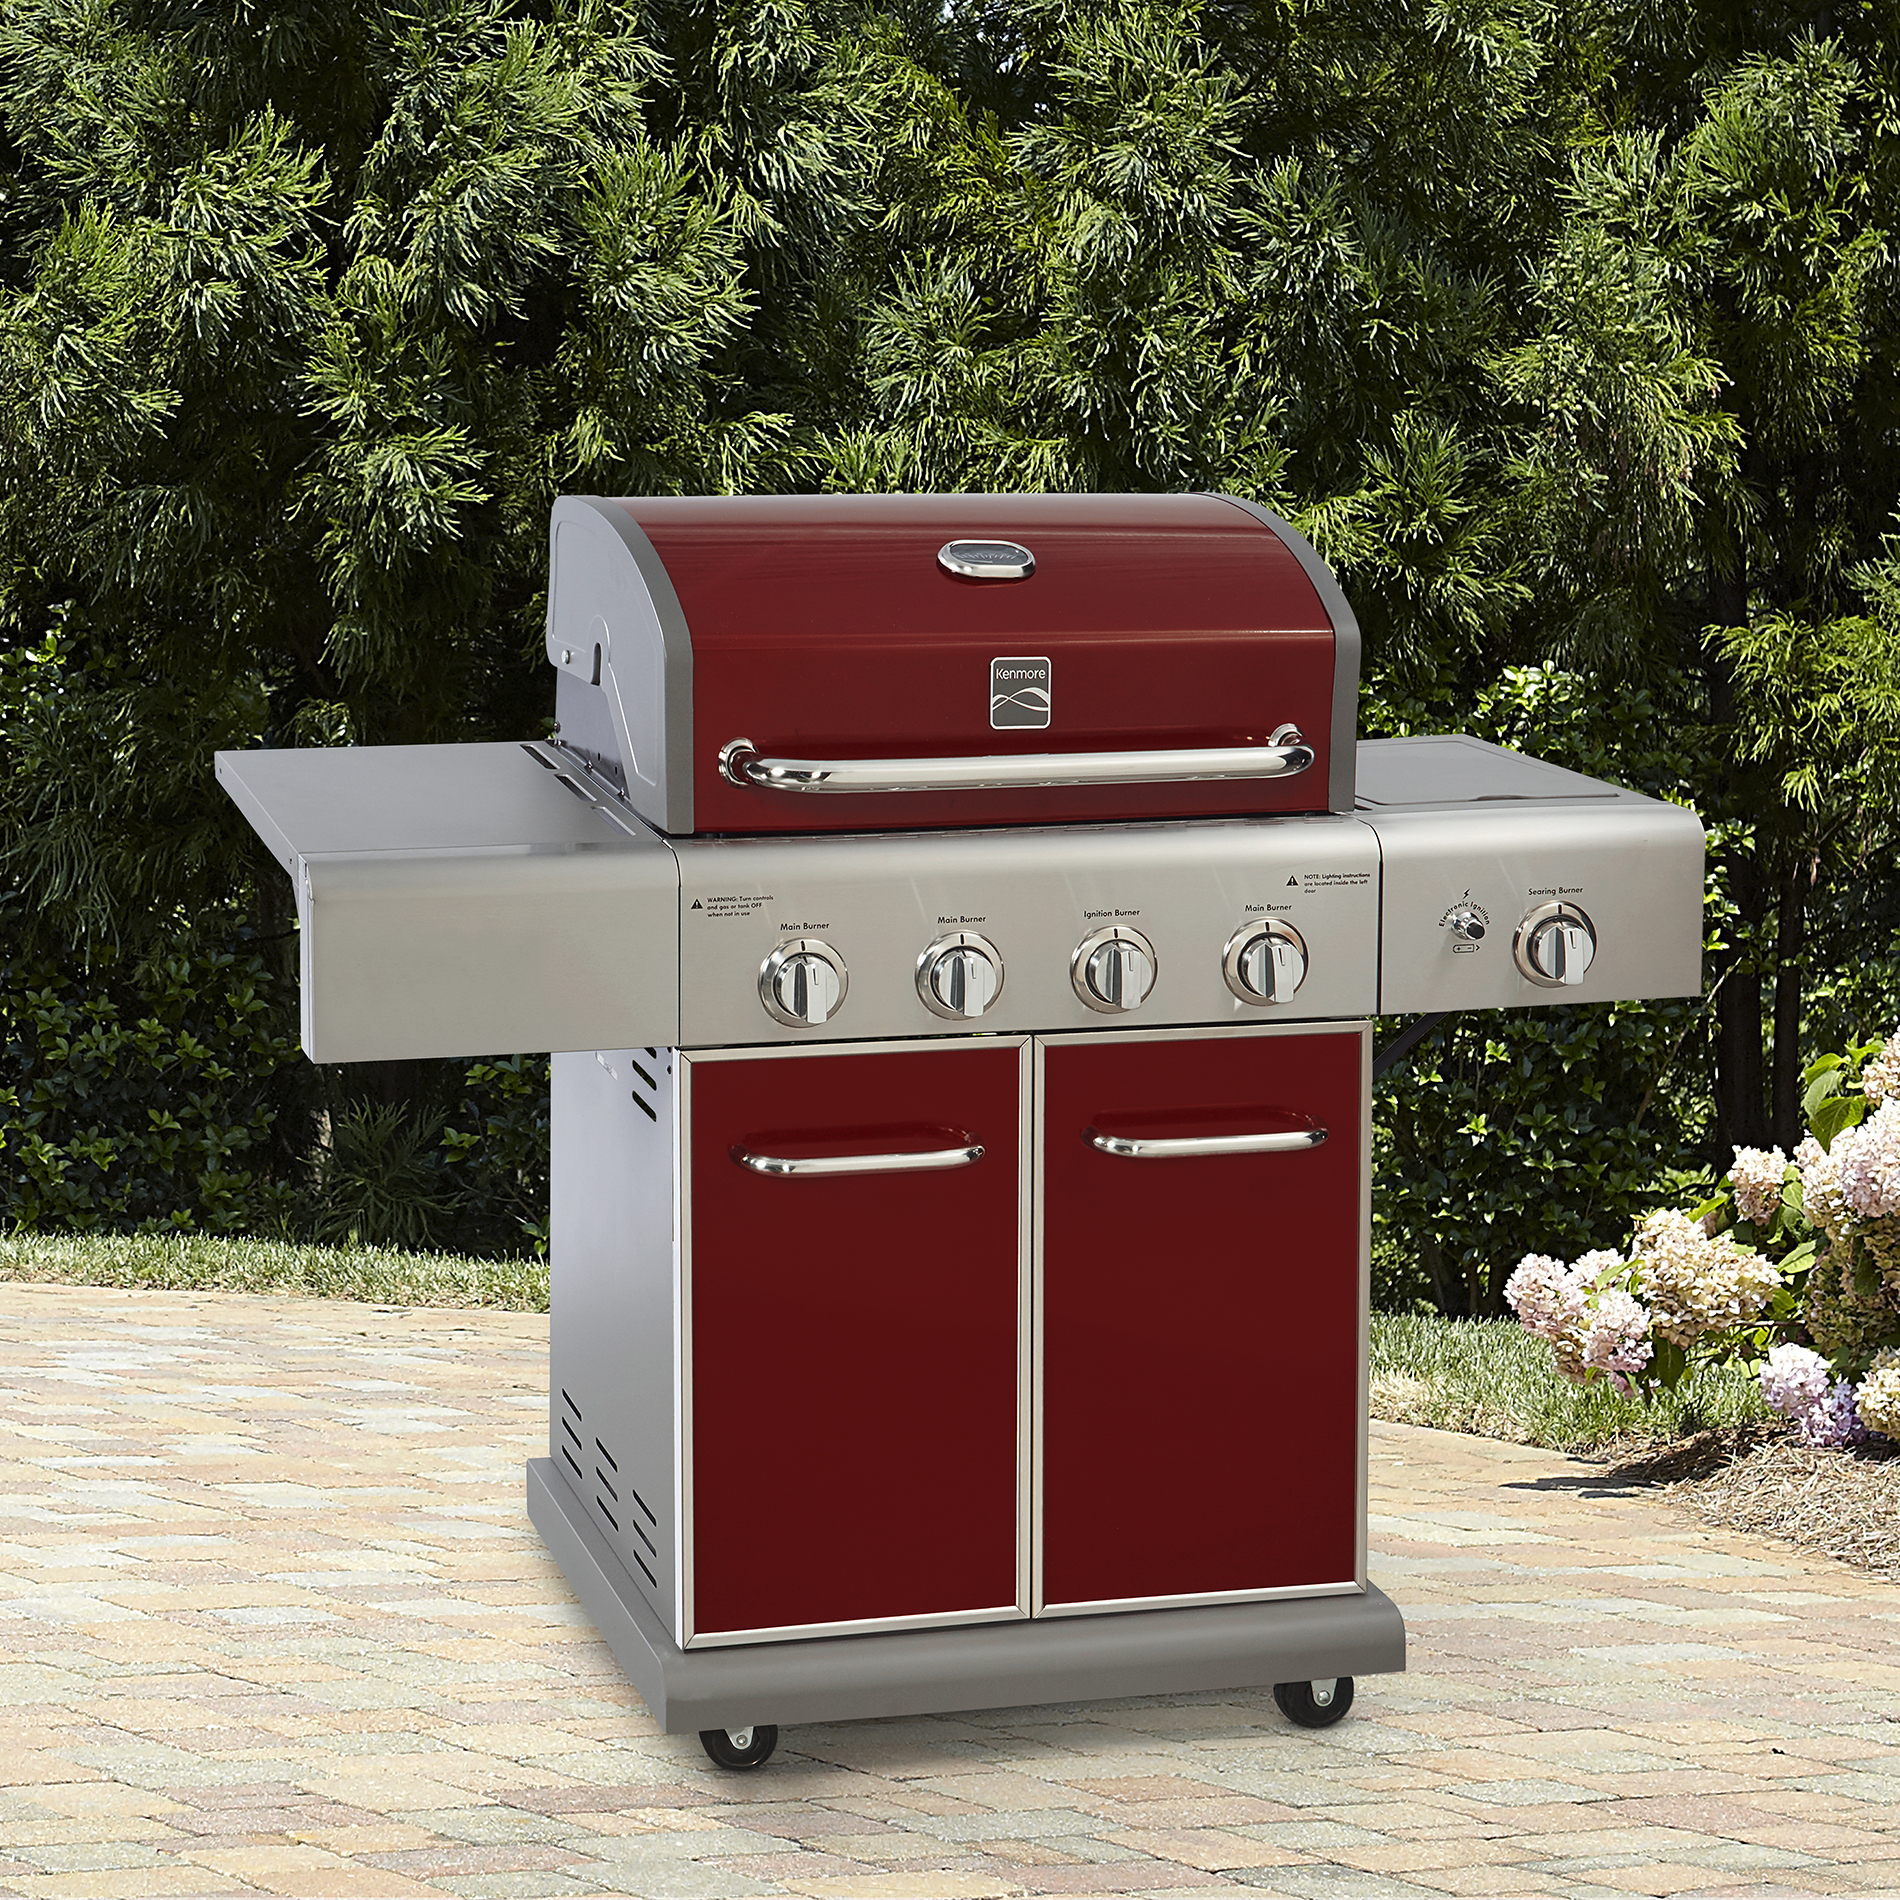 Kenmore 4 Burner Lp Red Gas Grill With Searing Side